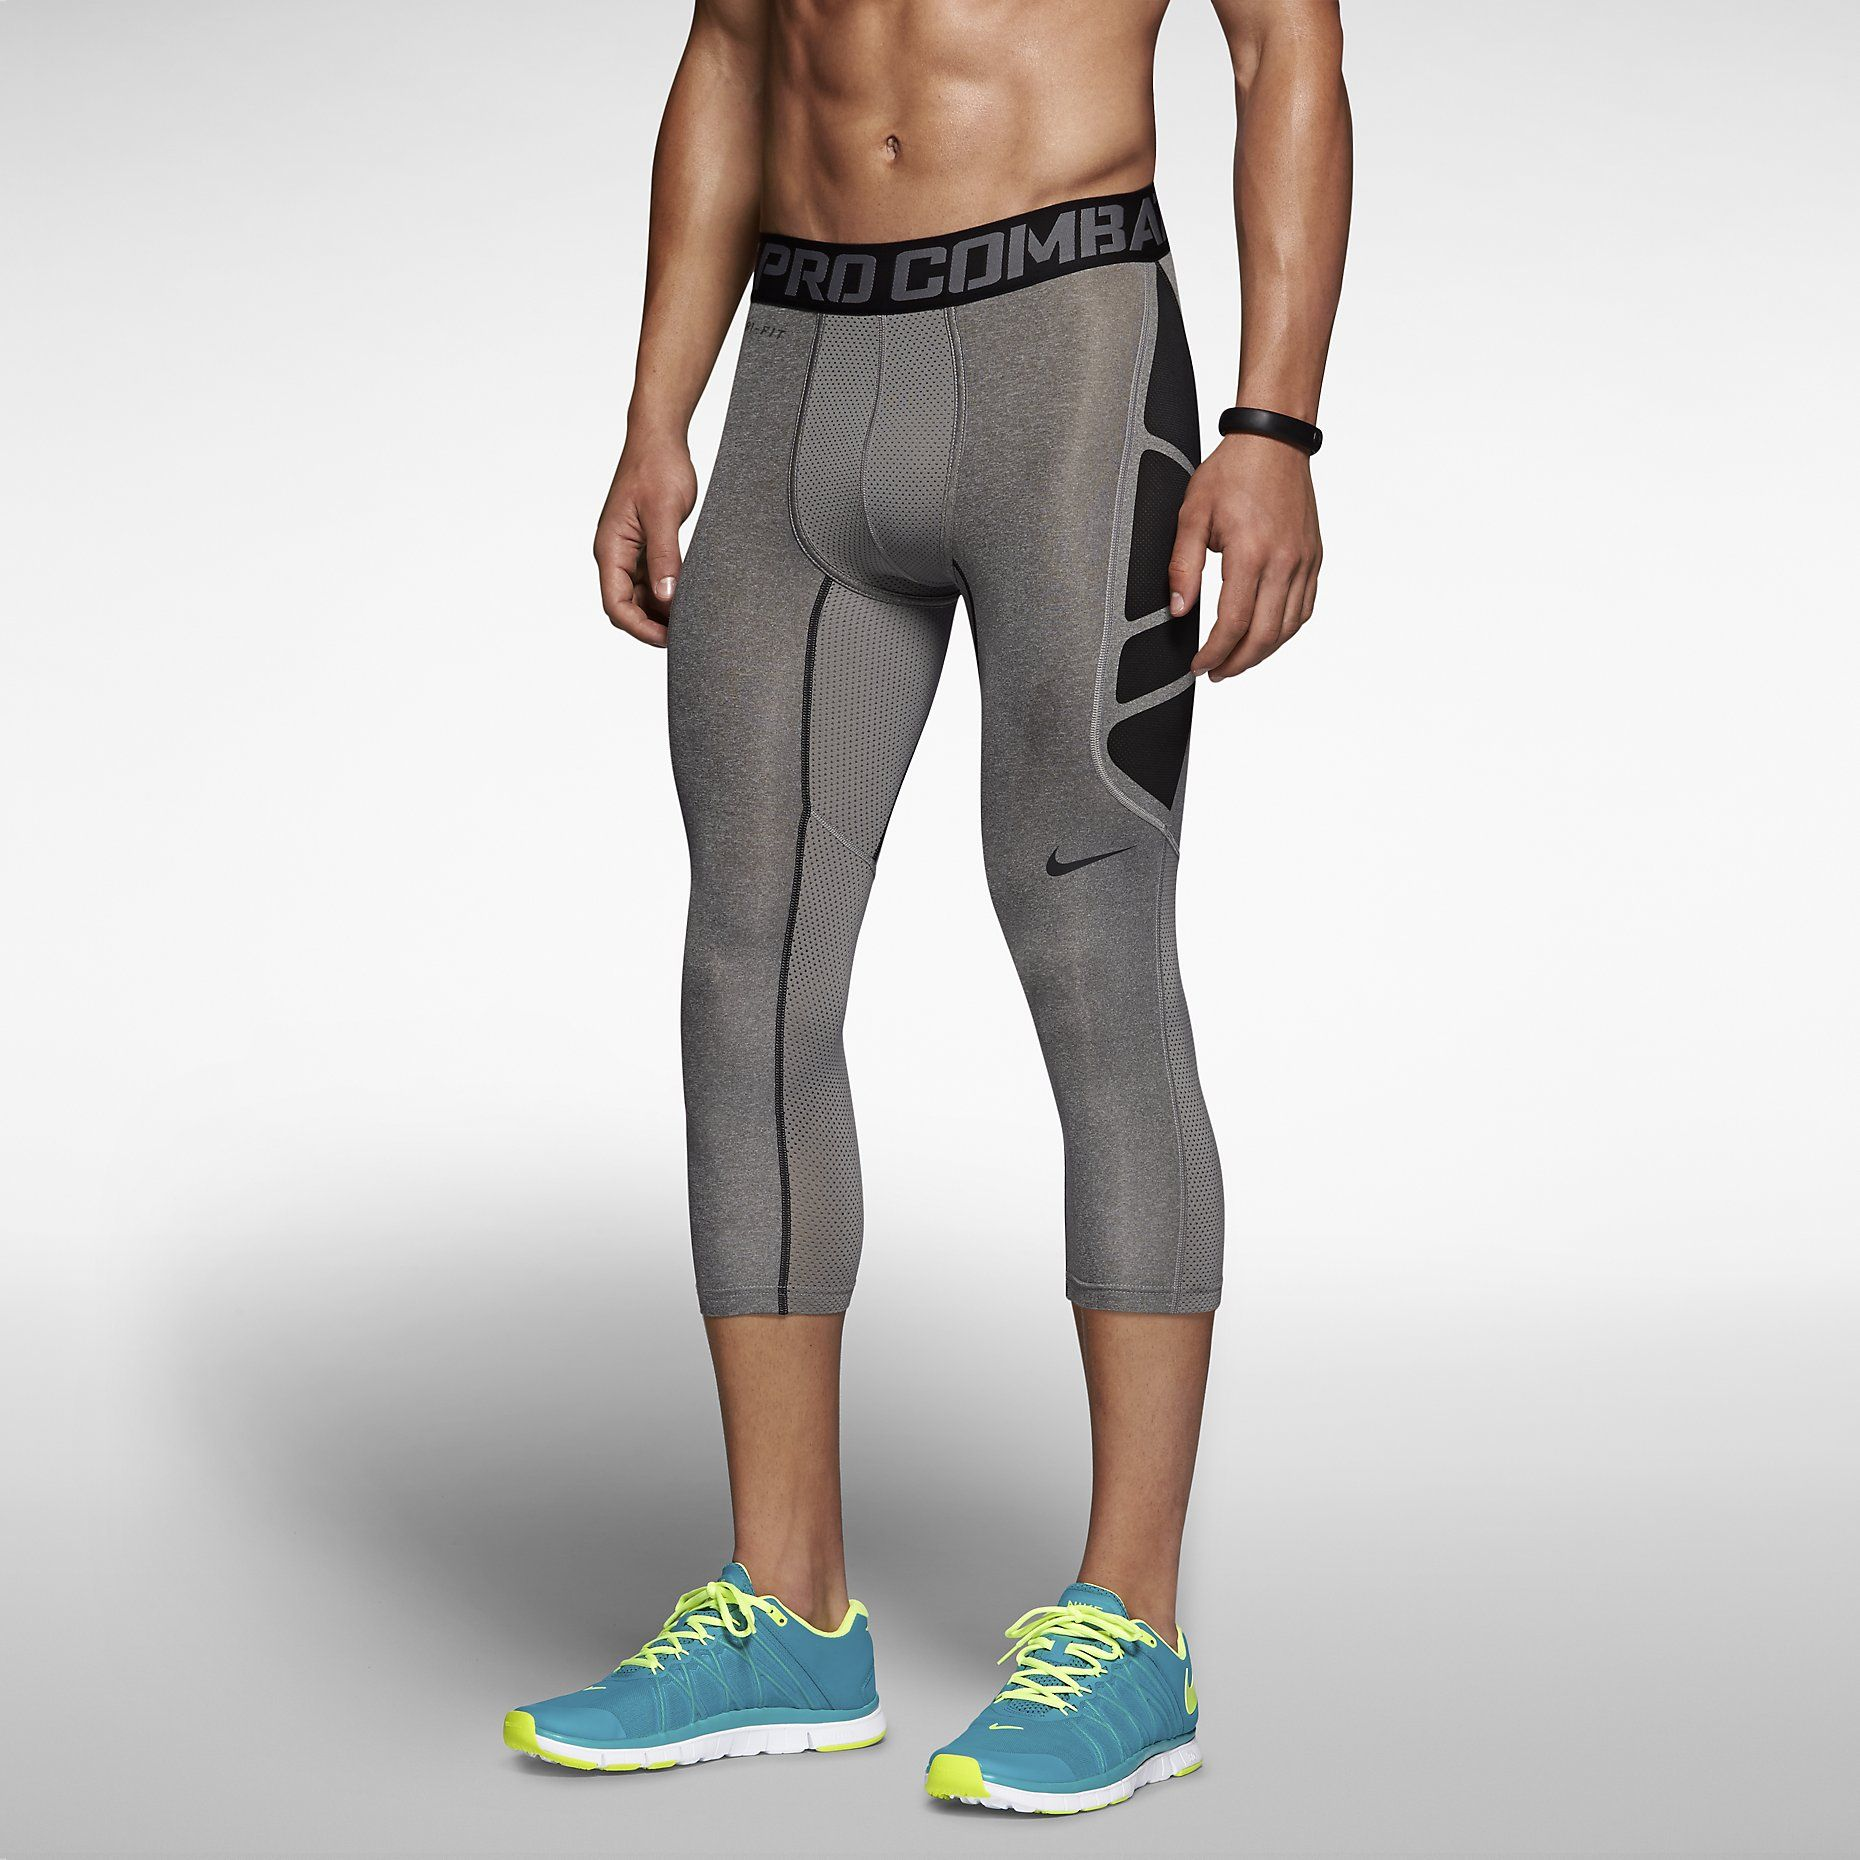 c6377188f4 Nike Pro Combat Hypercool Compression 3/4-Length Men's Tights. Nike ...